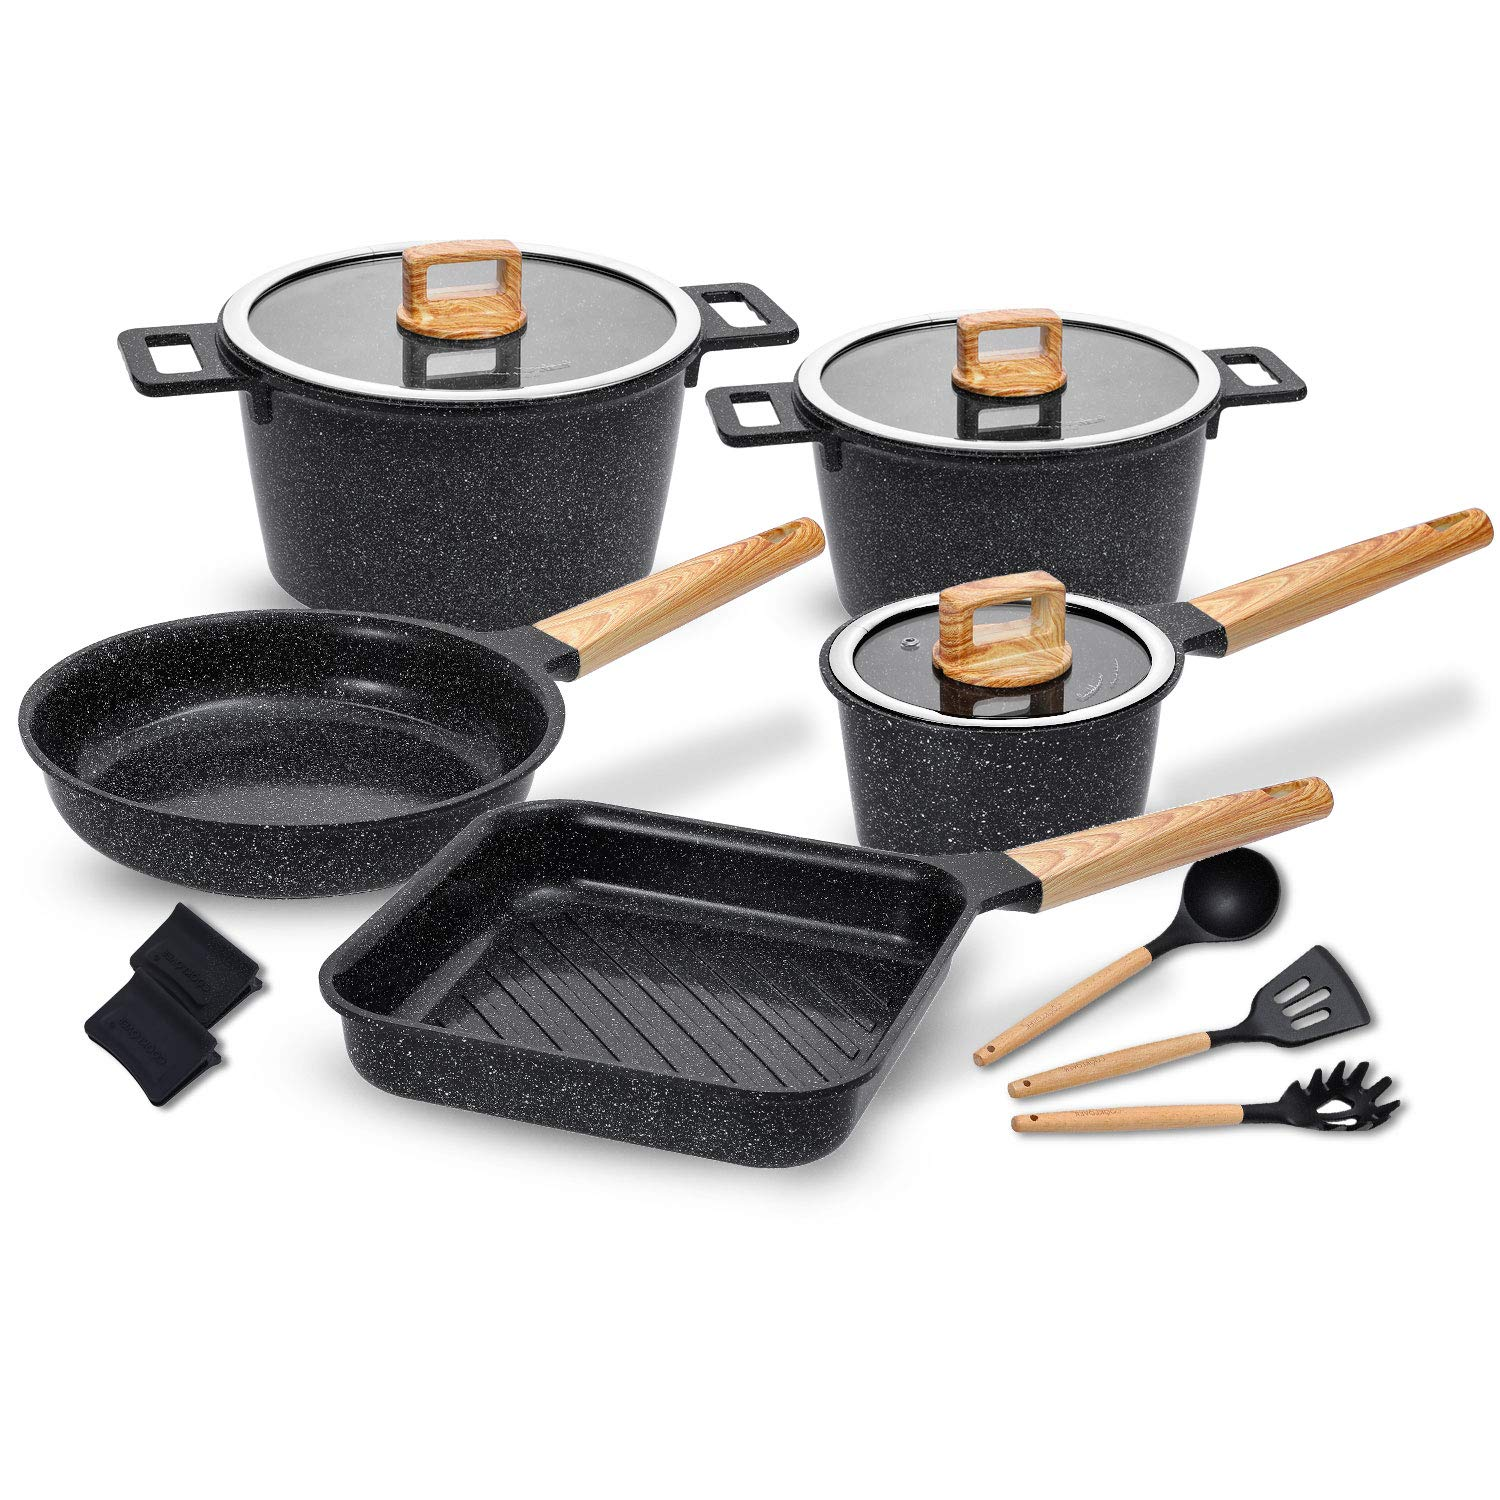 Ceramic Cookware Set Non-Stick Dishwasher Safe Scratch Resistant 100% PFOA Free Induction Aluminum Pots and Pans Set with Cooking Utensil Pack -13 - Black